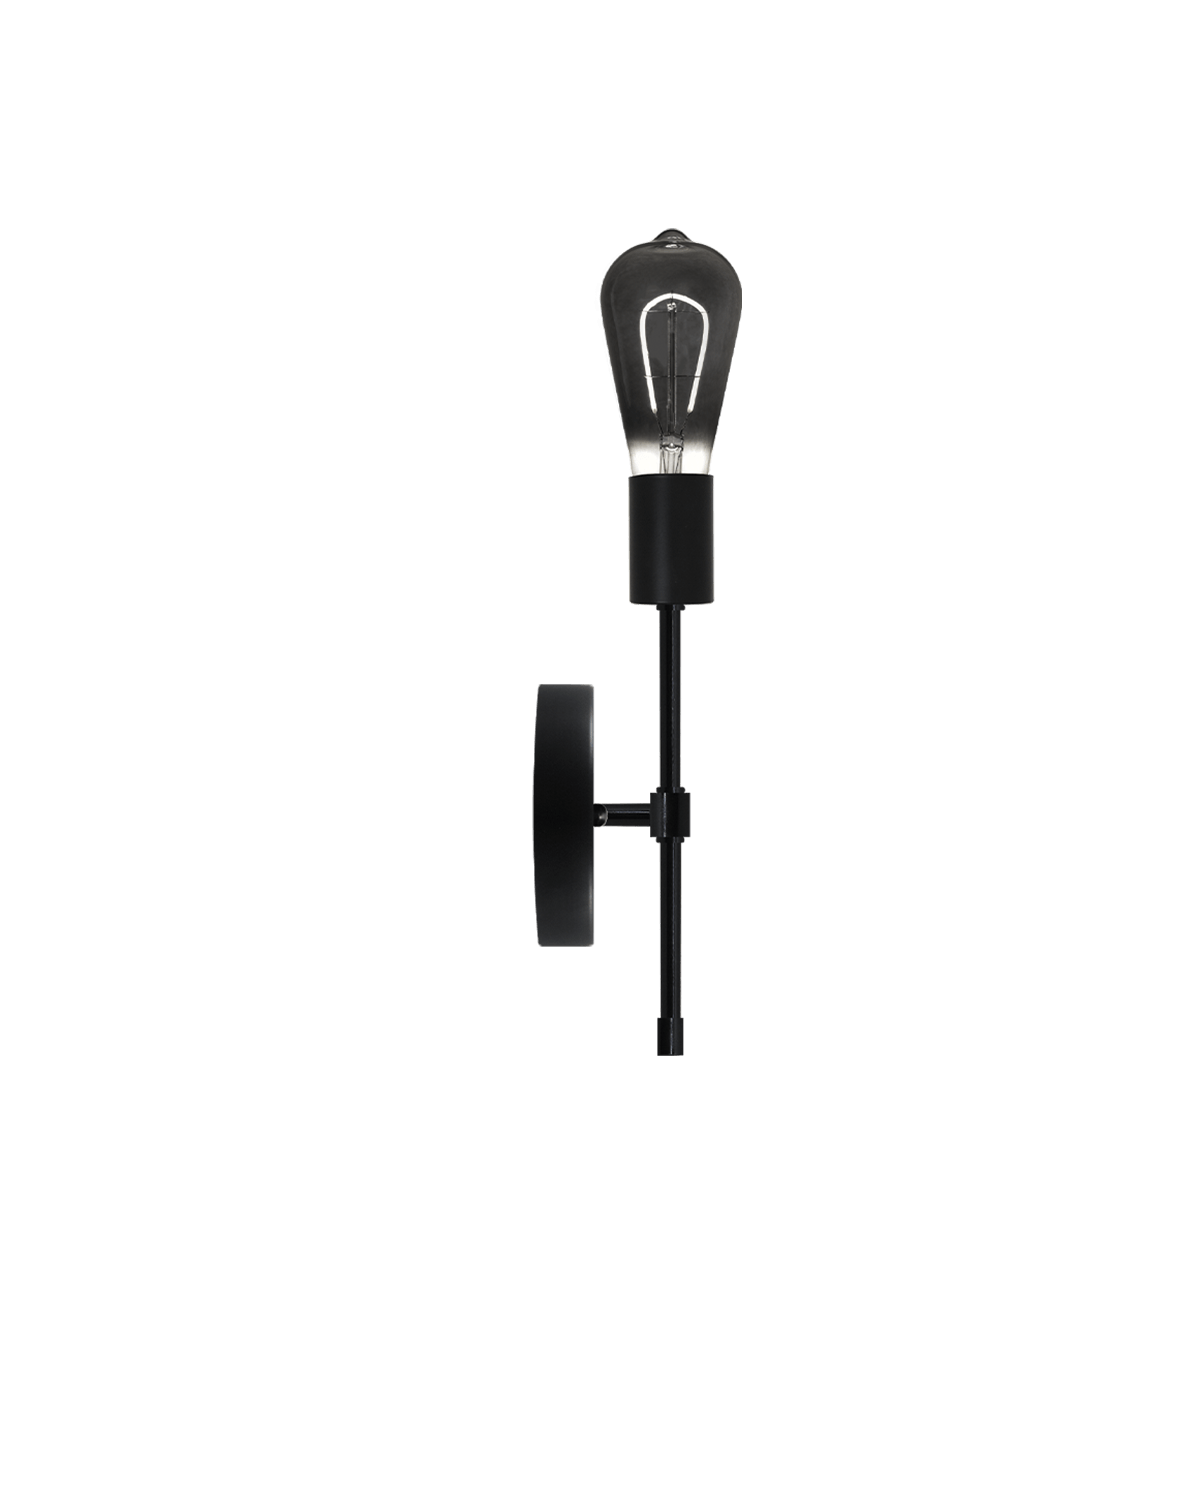 Torch Wall Sconce: Black with Smoke